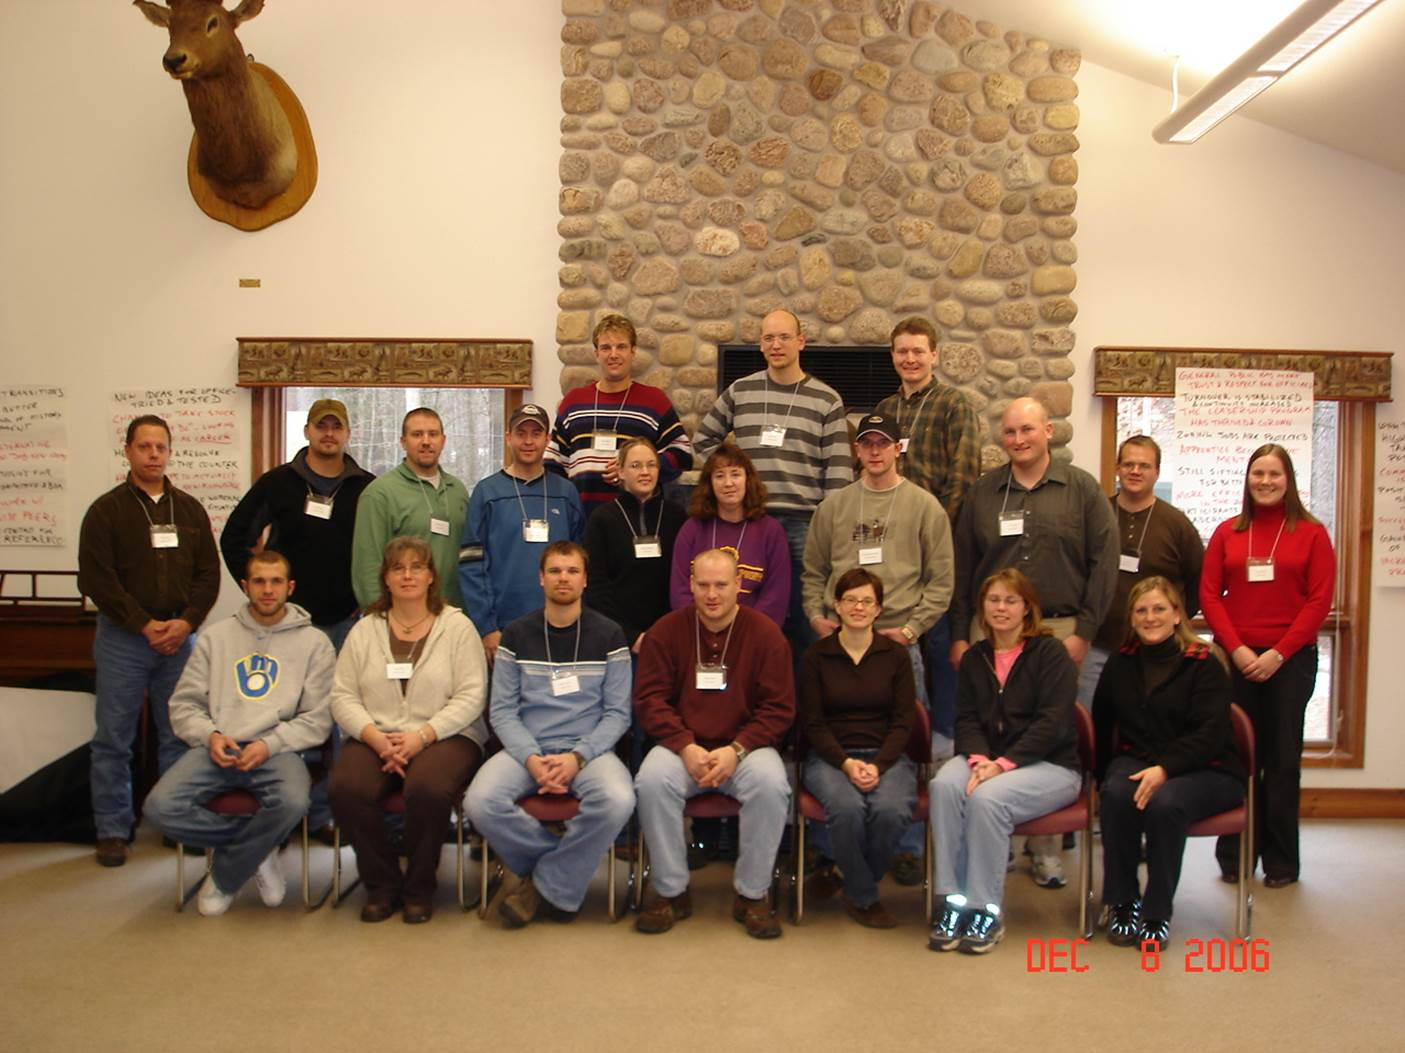 The 2006 Leadership Group